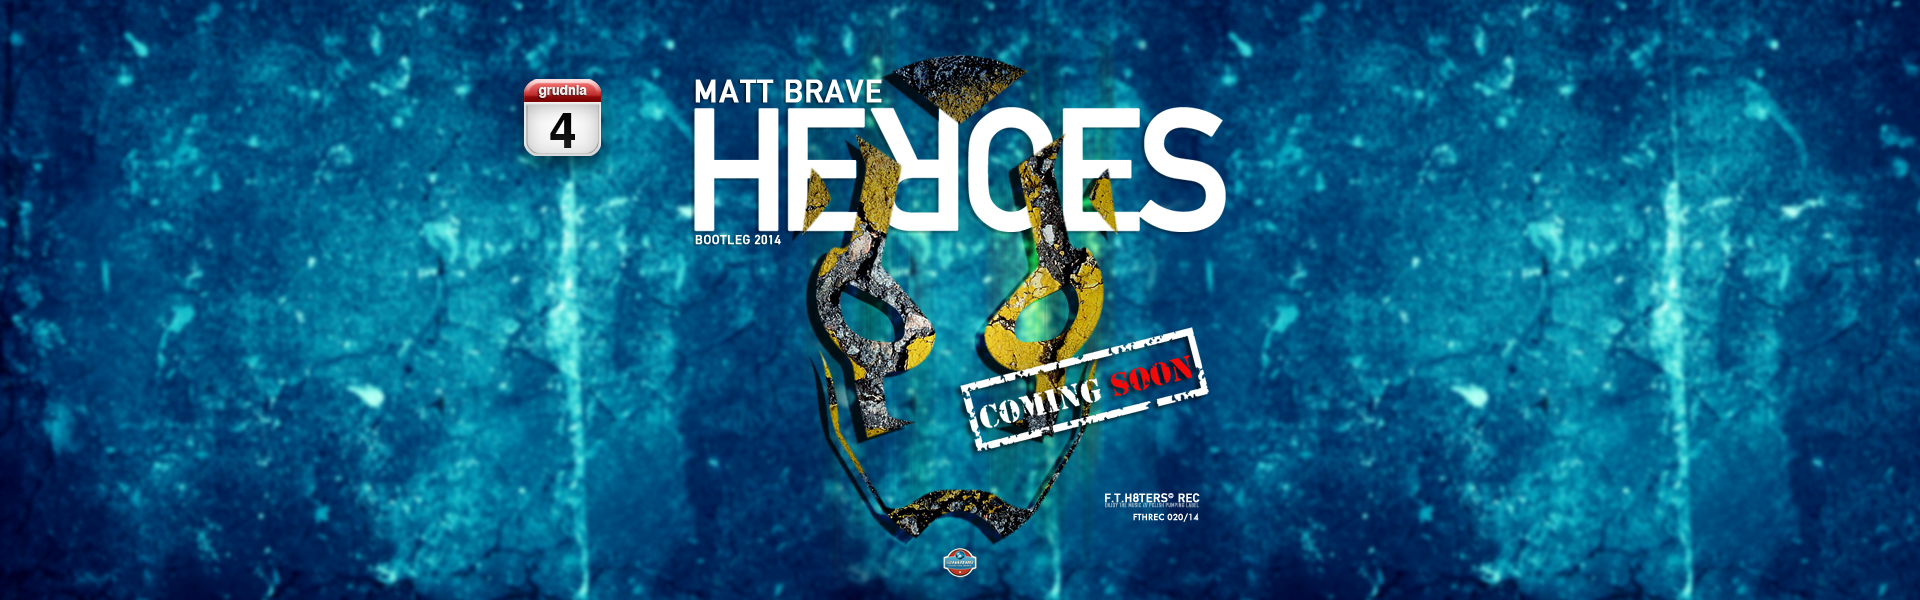 http://www.rtiaevents.pl/wp-content/uploads/2014/11/MattBrave-COVER-heroes.jpg